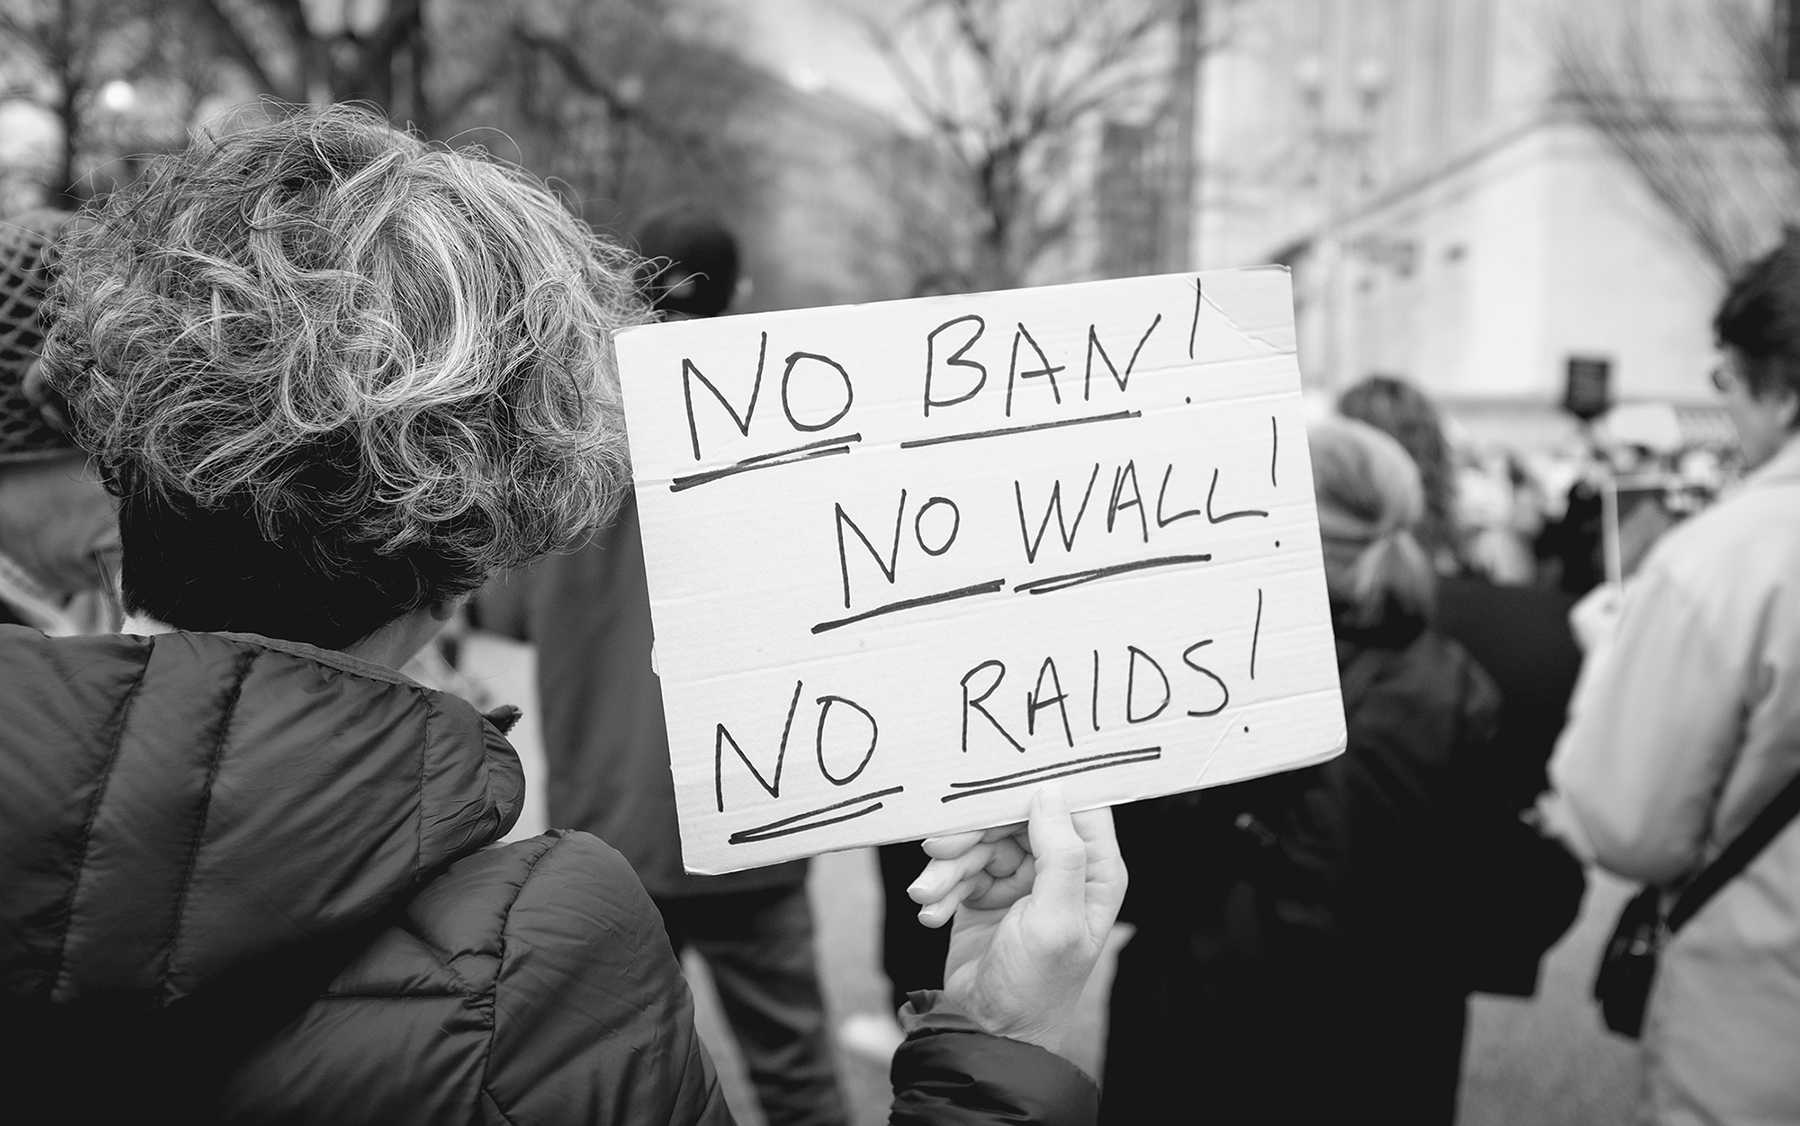 A protester holding a sign against Trump's executive order.